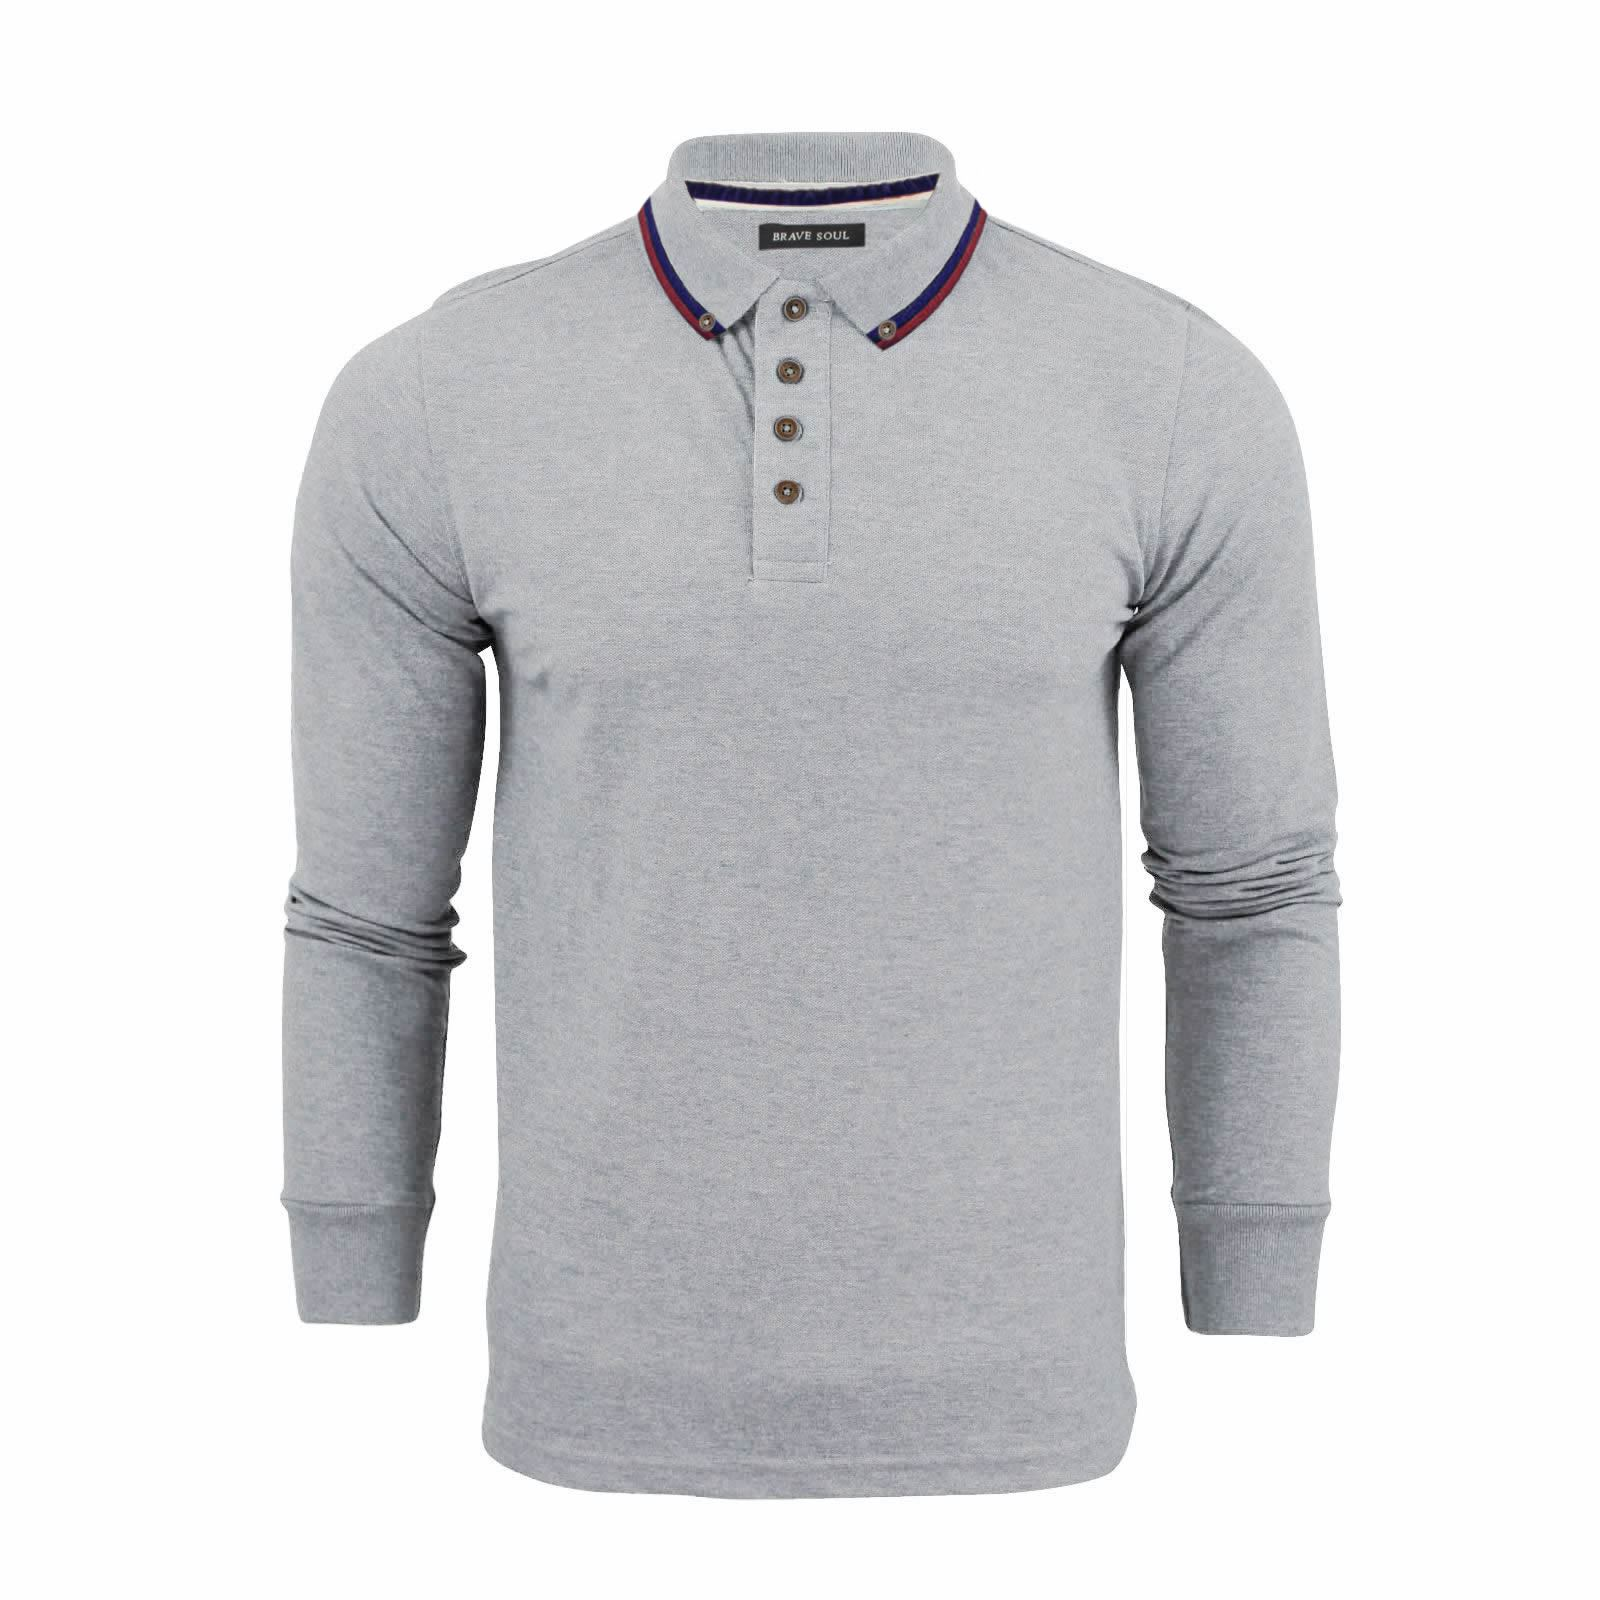 Brave-Soul-Lincoln-Homme-Polo-Shirt-a-Manches-Longues-En-Coton-Pique-Top-Casual miniature 7